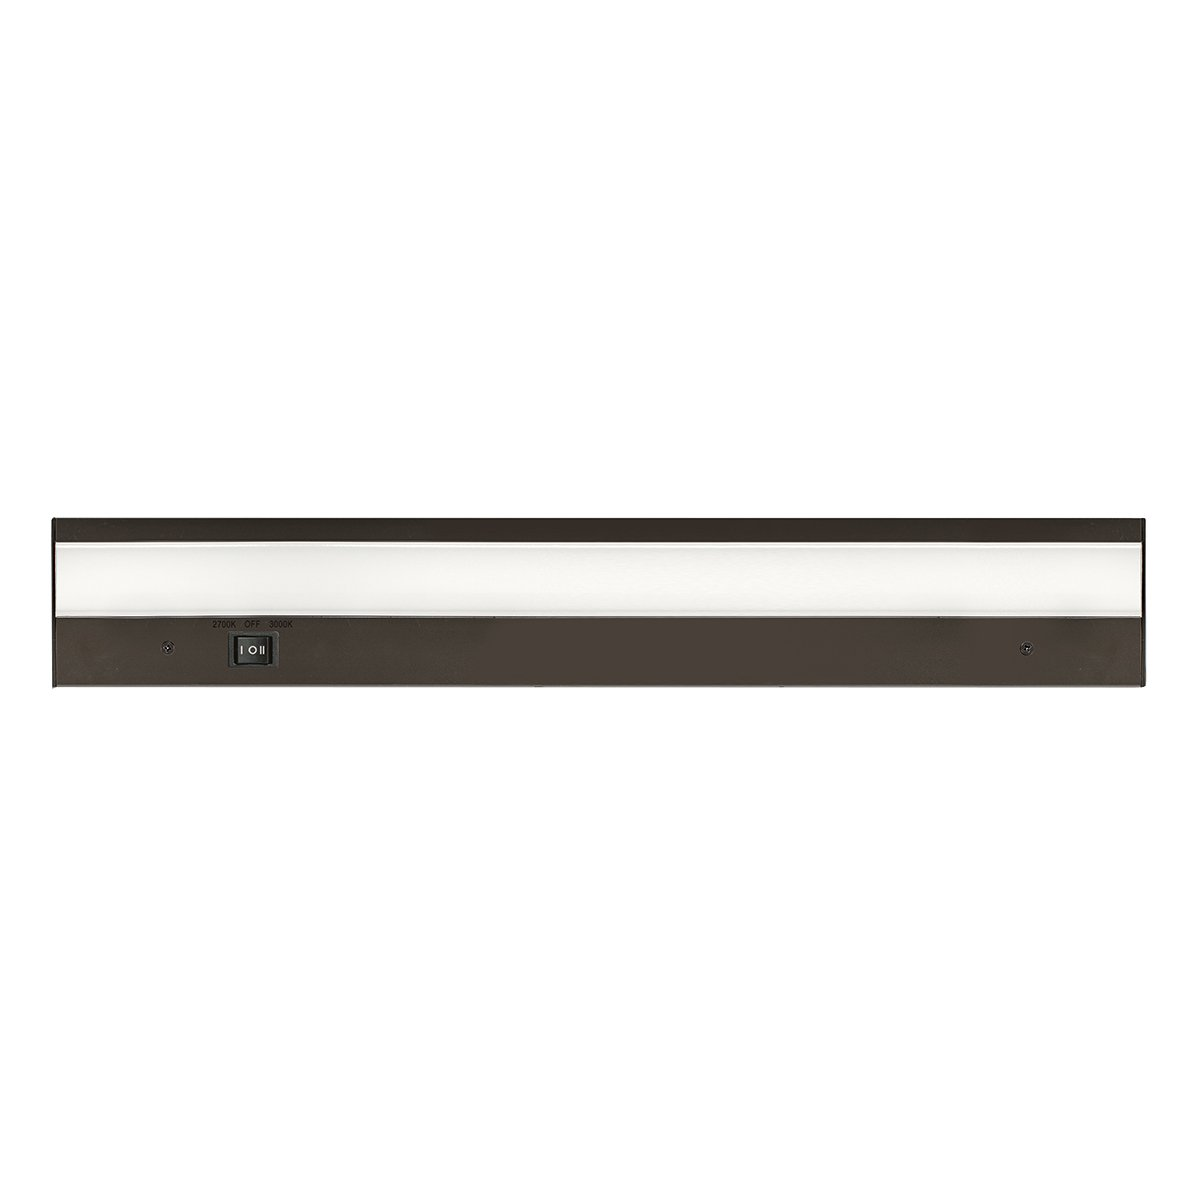 Brzone 18 Inches WAC Lighting BA-ACLED30-27 30BZ Duo ACLED Dual color Option Bar in Bronze Finish; 2700K and 3000K, 30 Inches